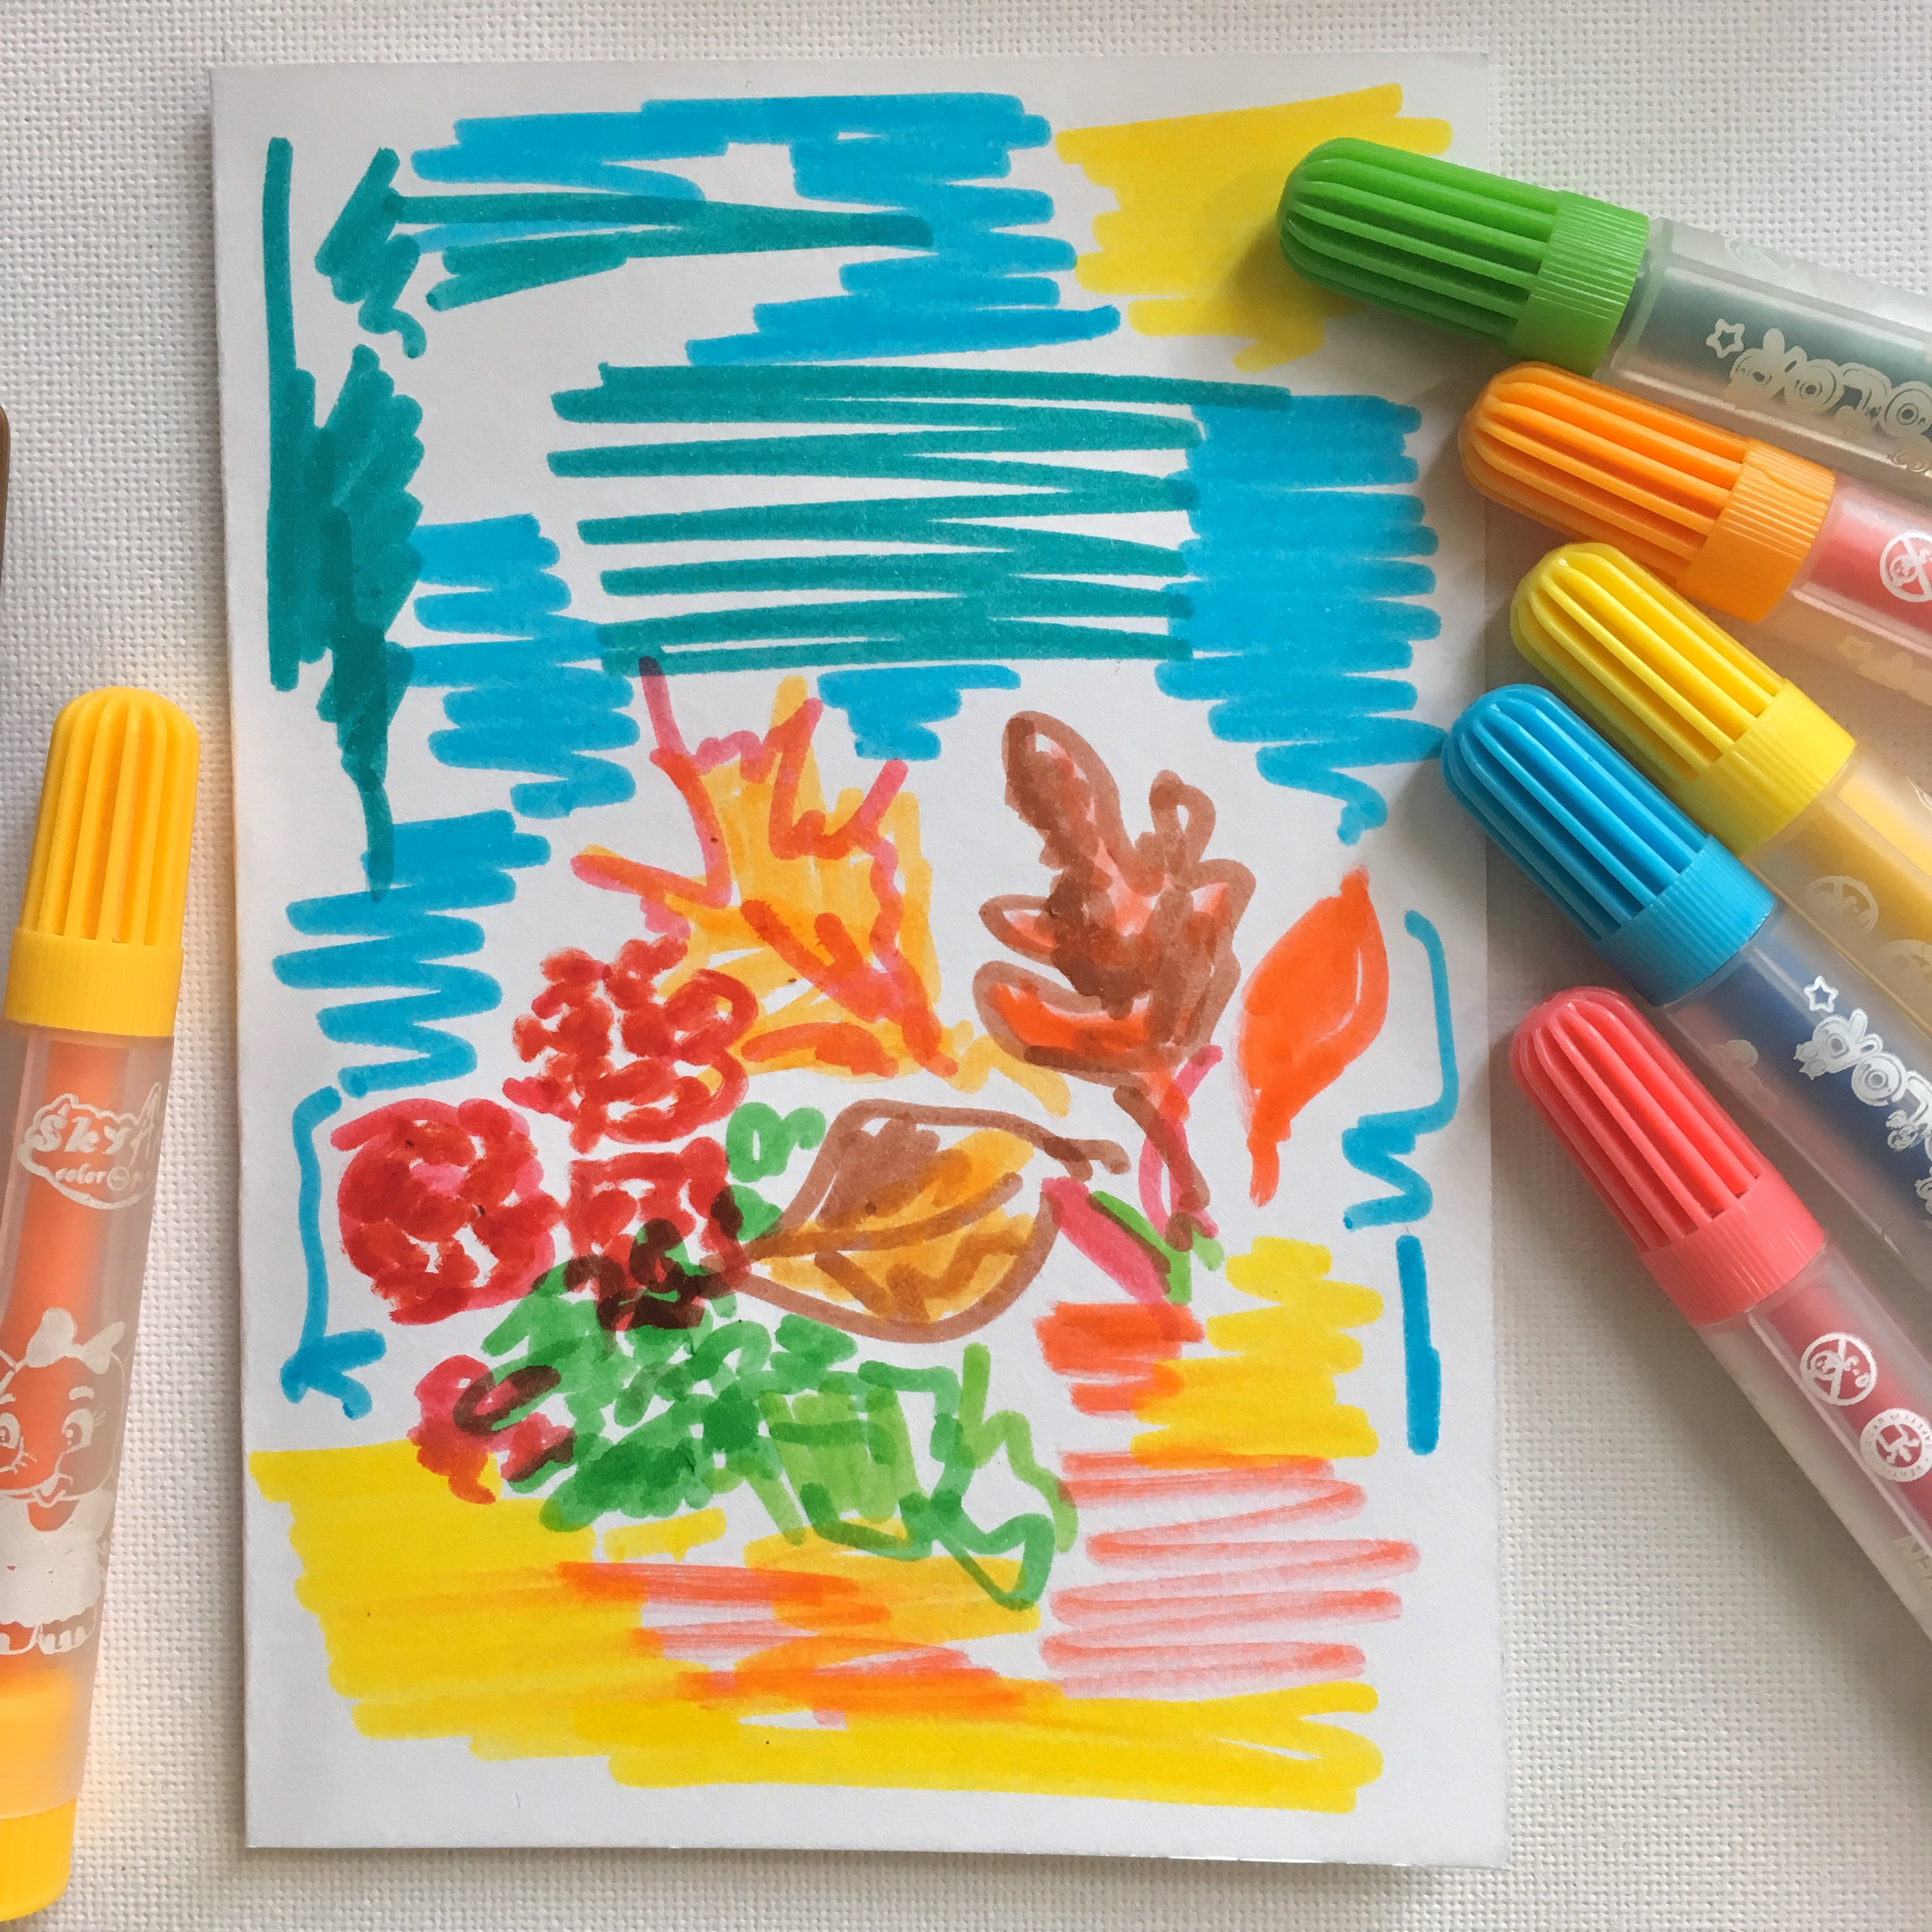 watercolour markers and sketches of leaves, Pelargonium blosoms in red, blue sky and sea and some Autumn leaves in orange, brown and yellow